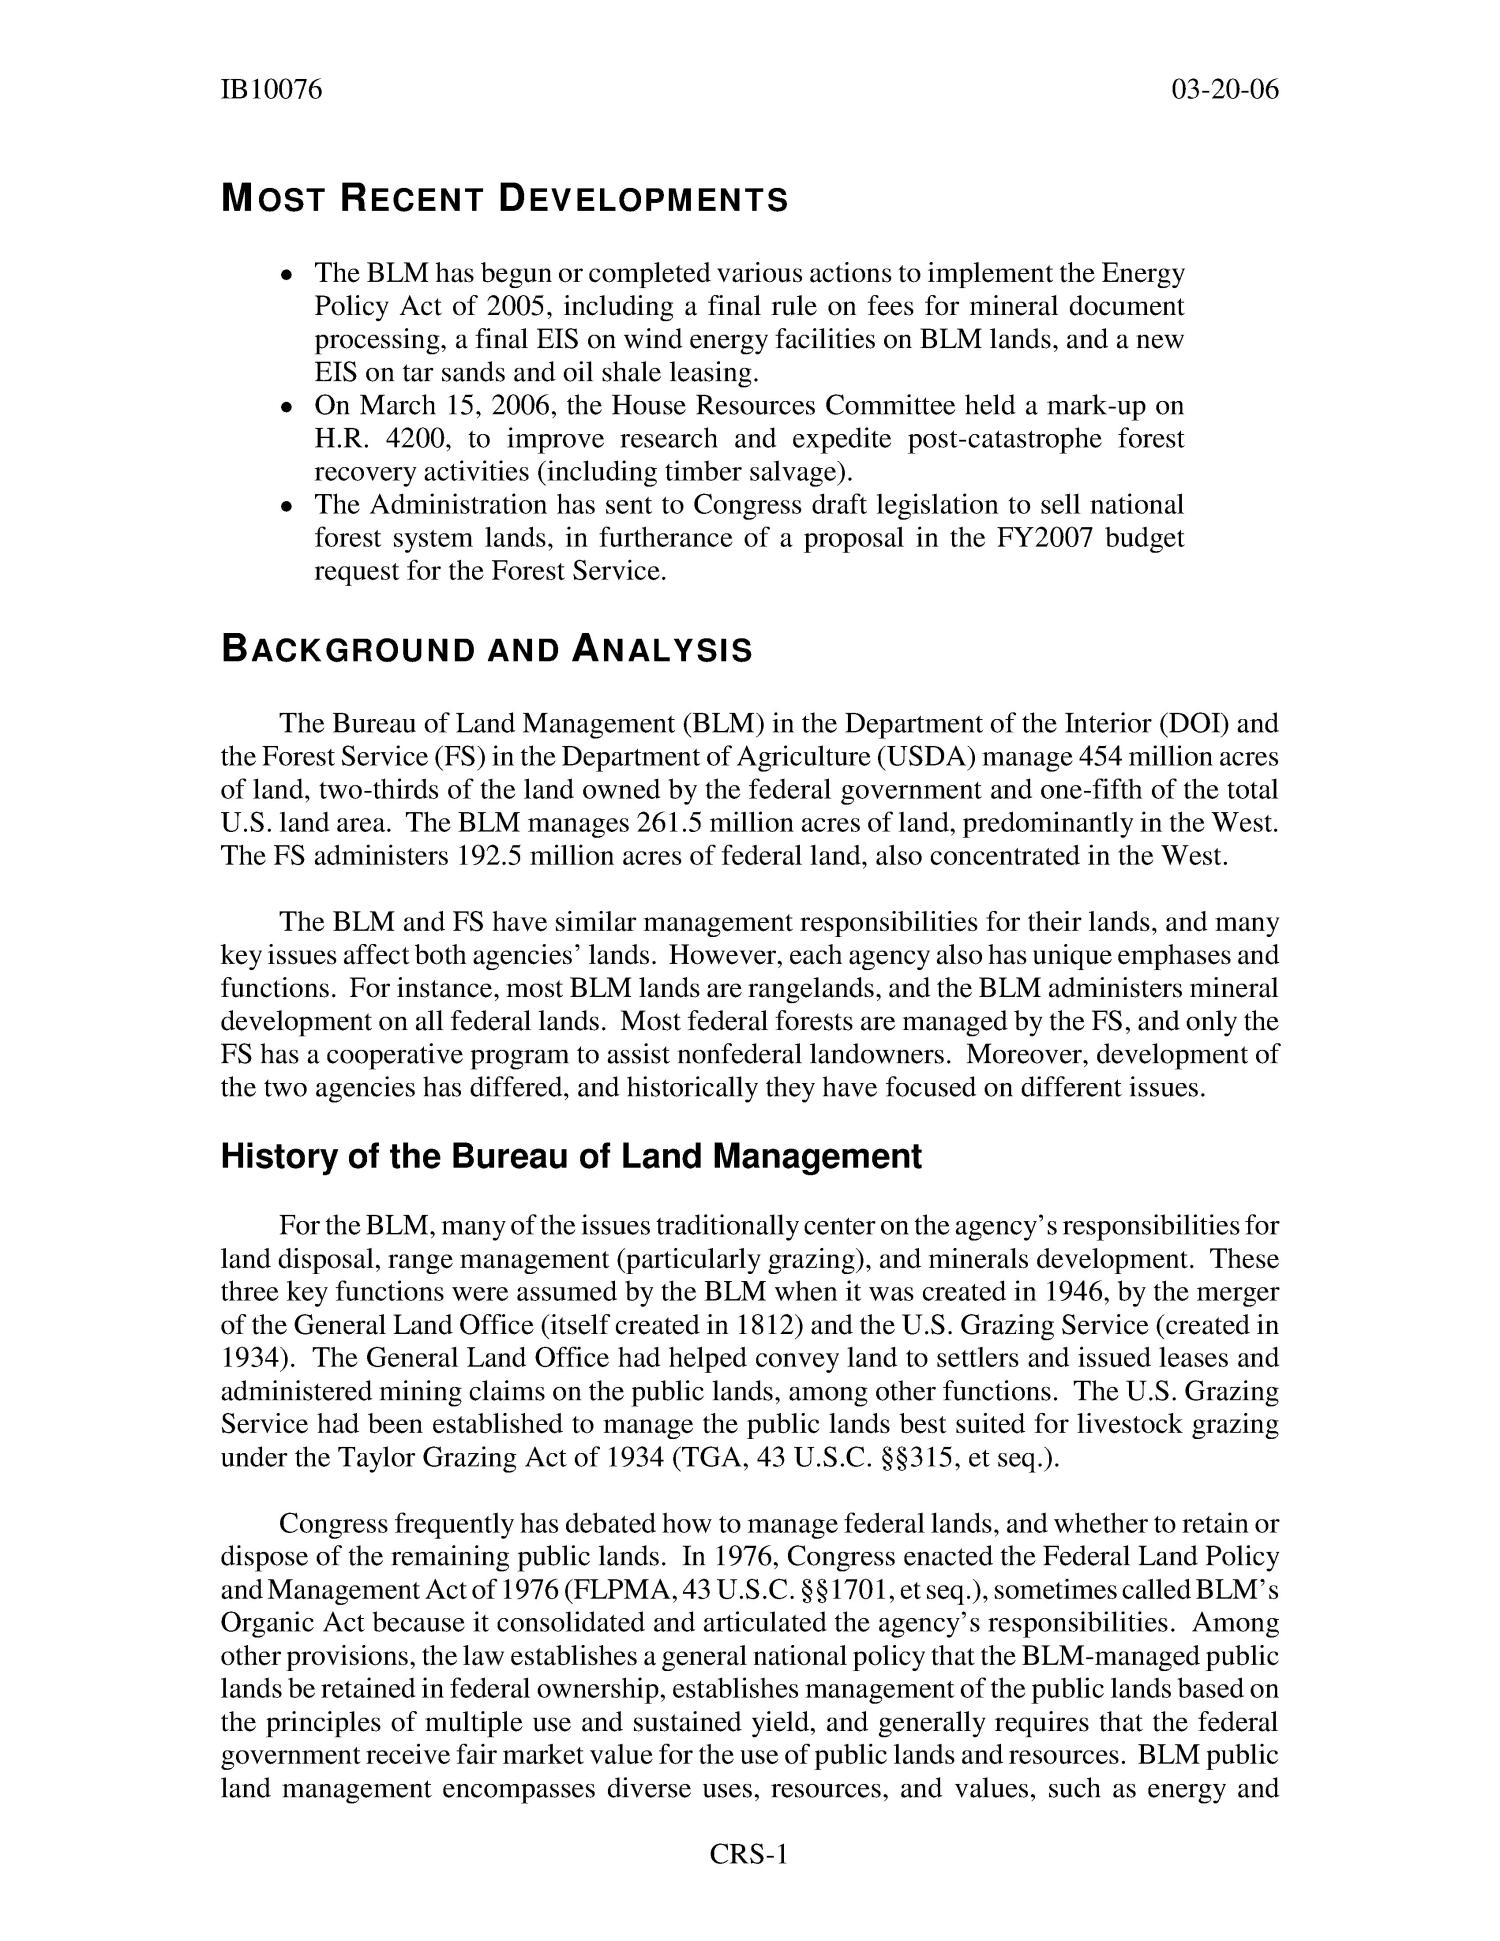 Bureau of Land Management (BLM) Lands and National Forests                                                                                                      [Sequence #]: 4 of 18